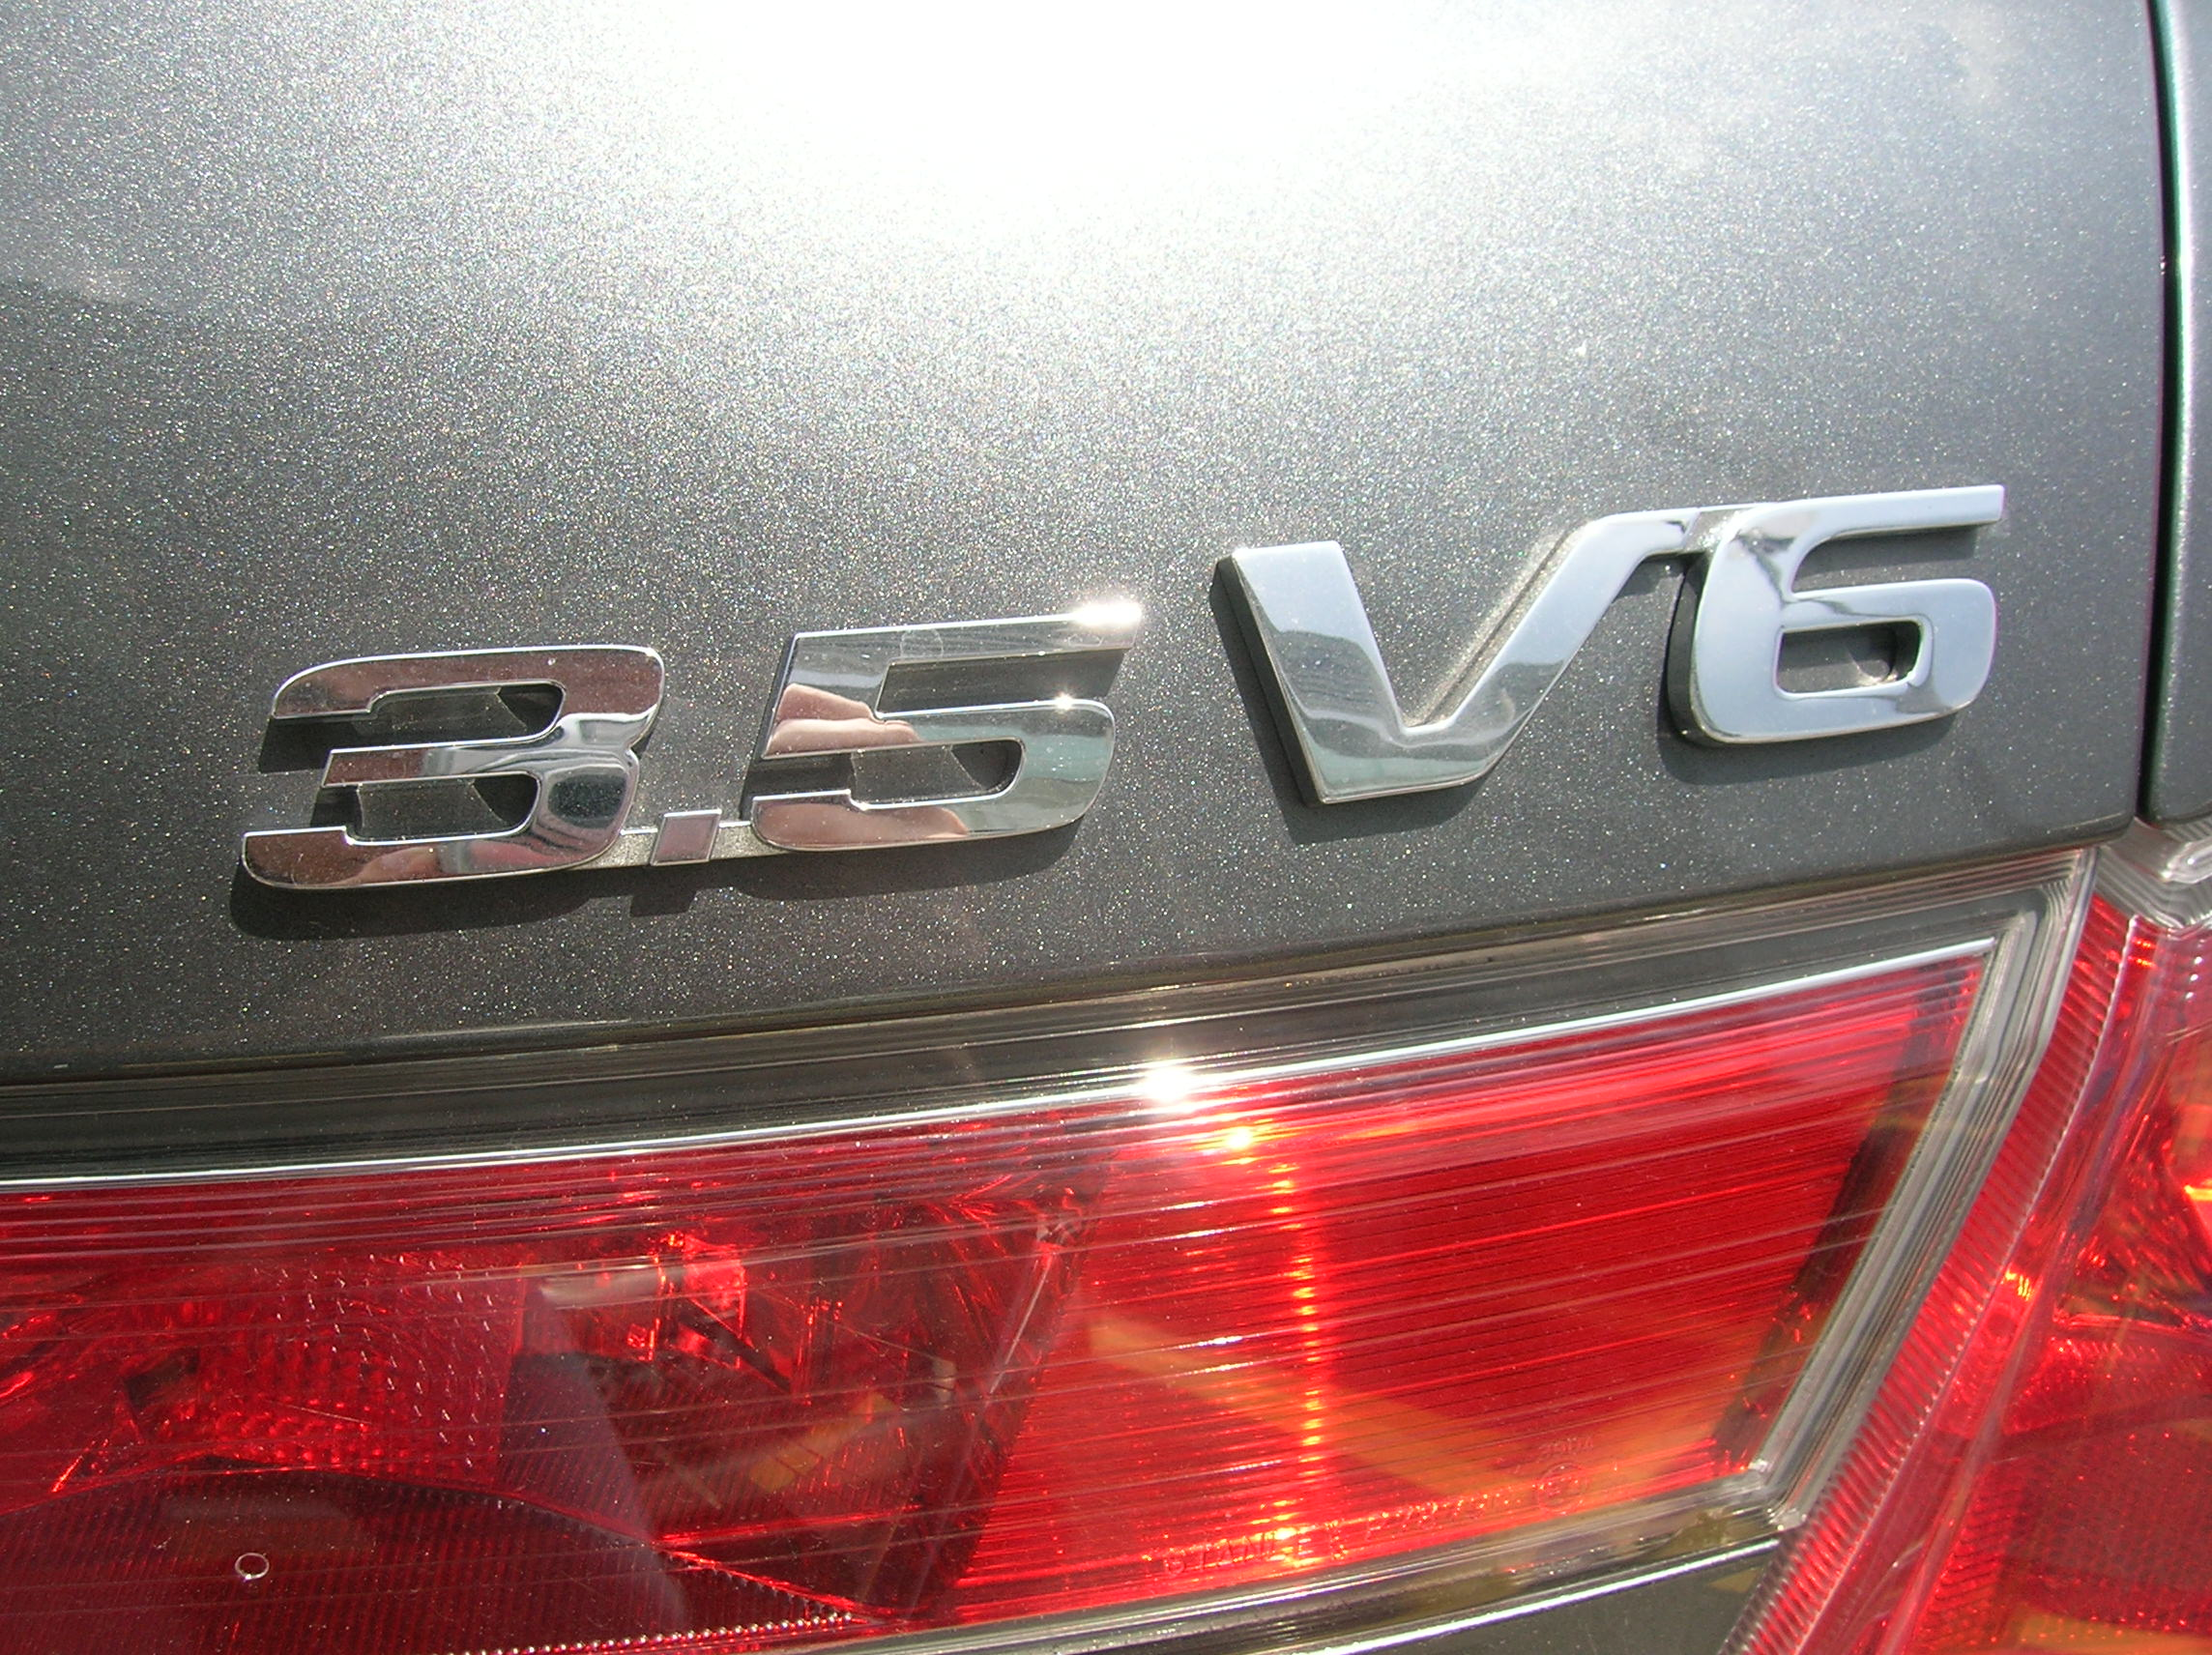 3.5-litre V6 engine comes with cylinder deactivation function, but with all cylinders firing, it's good for 275hp and 339Nm